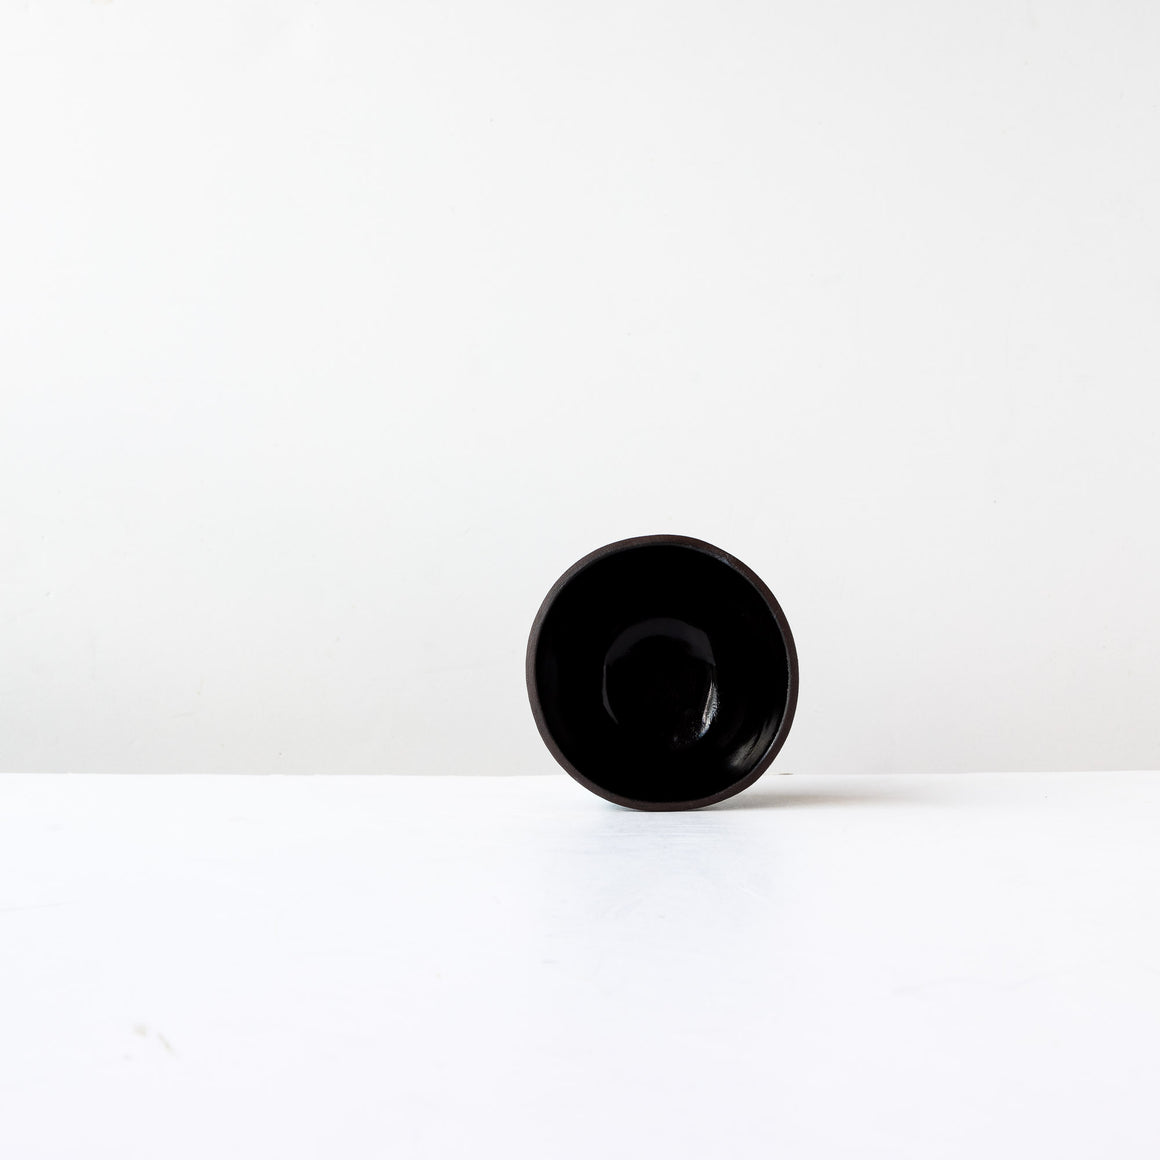 Two Handmade Small Bowls in Black Lacquered Stoneware - Sold by Chic & Basta